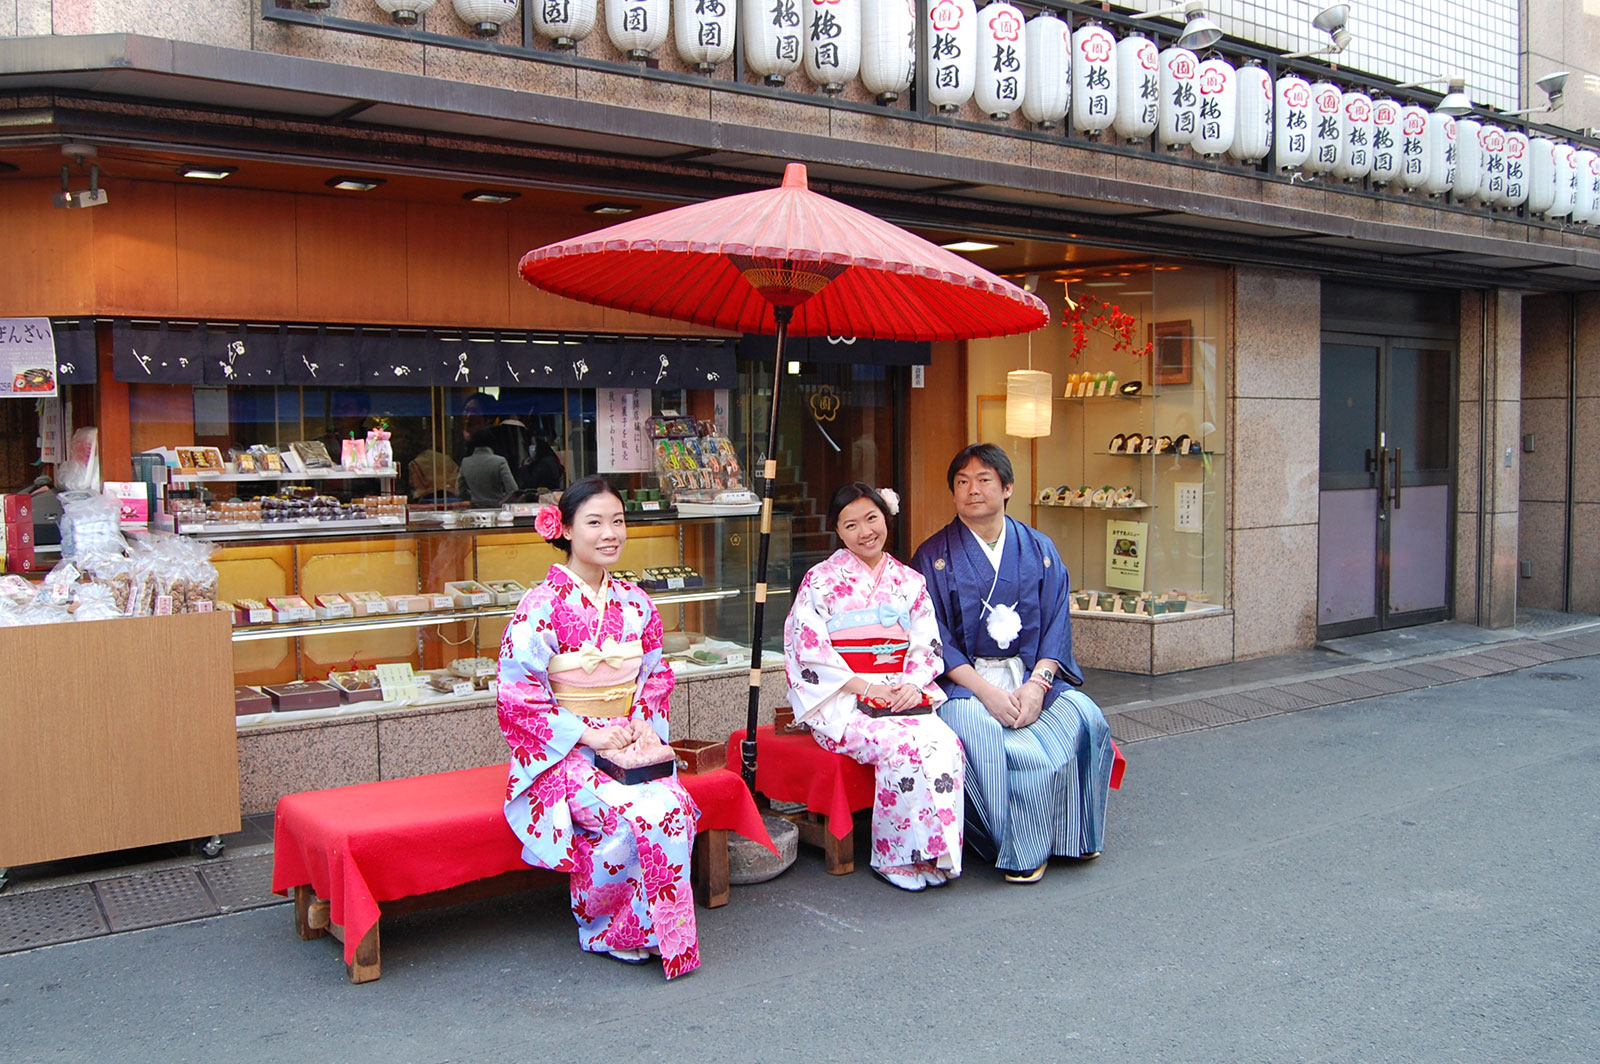 A chance to dress in traditional japanese style gaijinpot a chance to dress in traditional japanese style solutioingenieria Choice Image